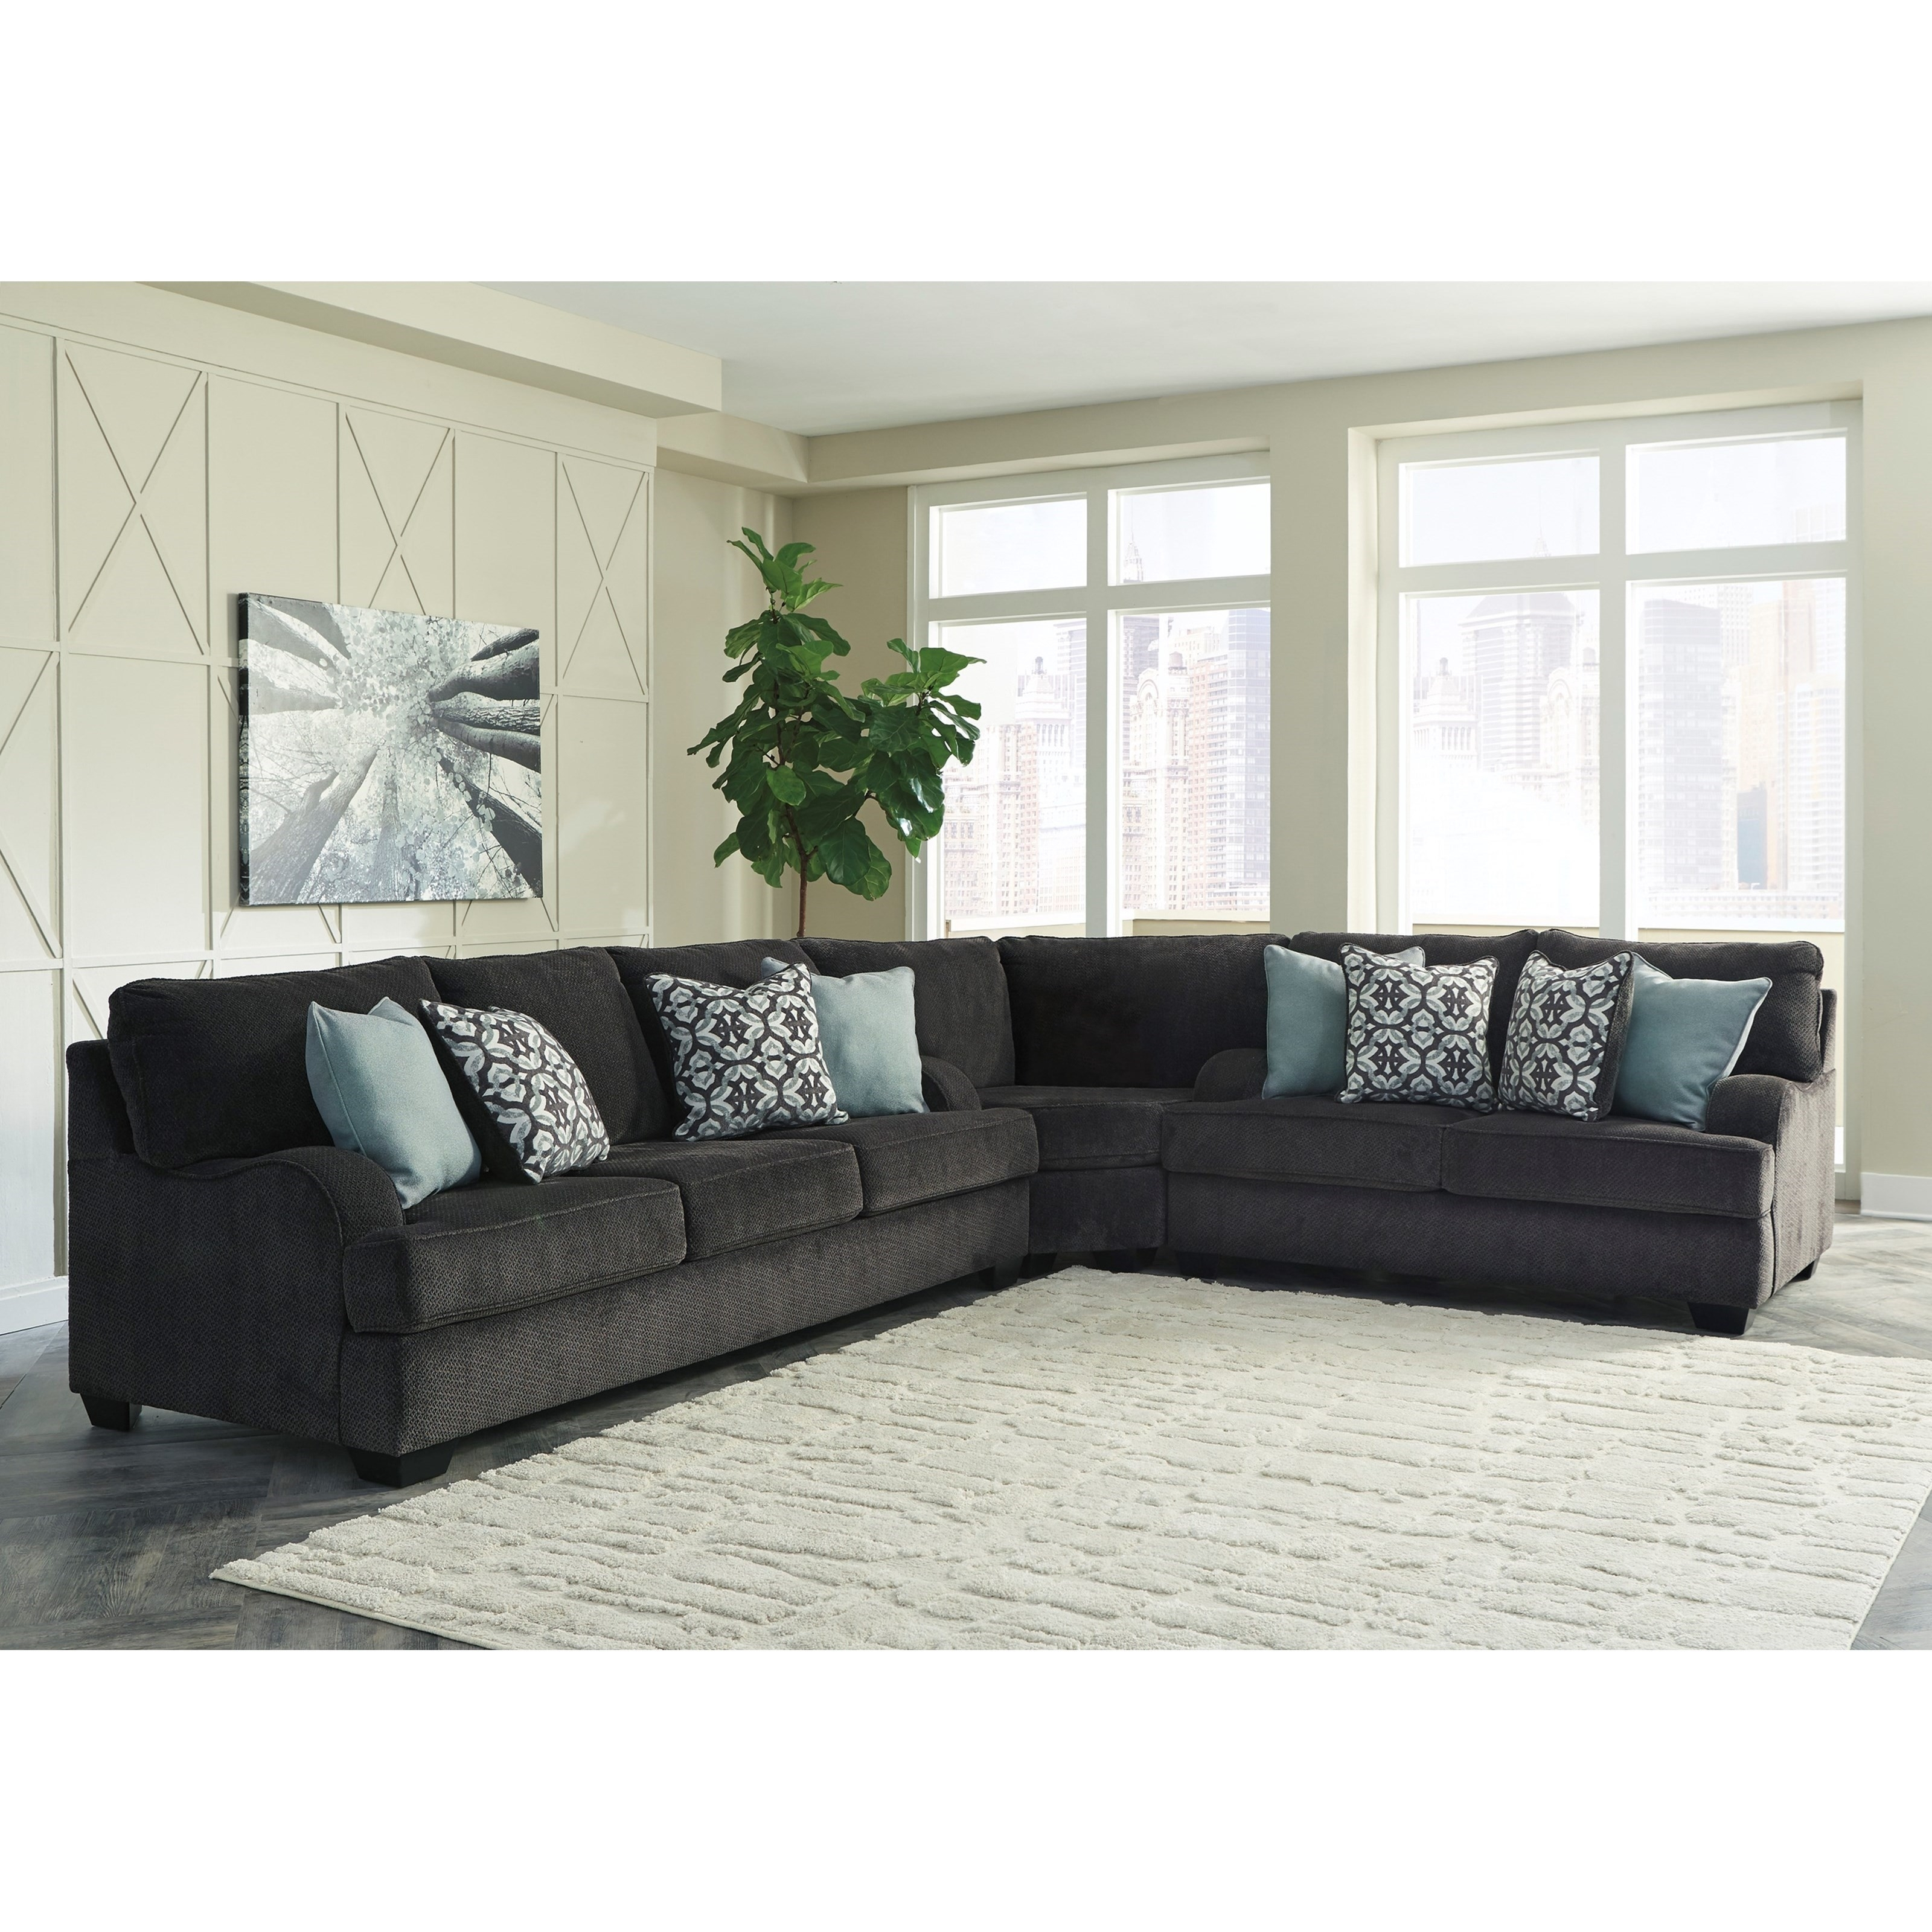 Luxury Splitting Up A Sectional Sofa Hiding Unfinished Side With Jackson Ms Sectional Sofas (Image 7 of 10)